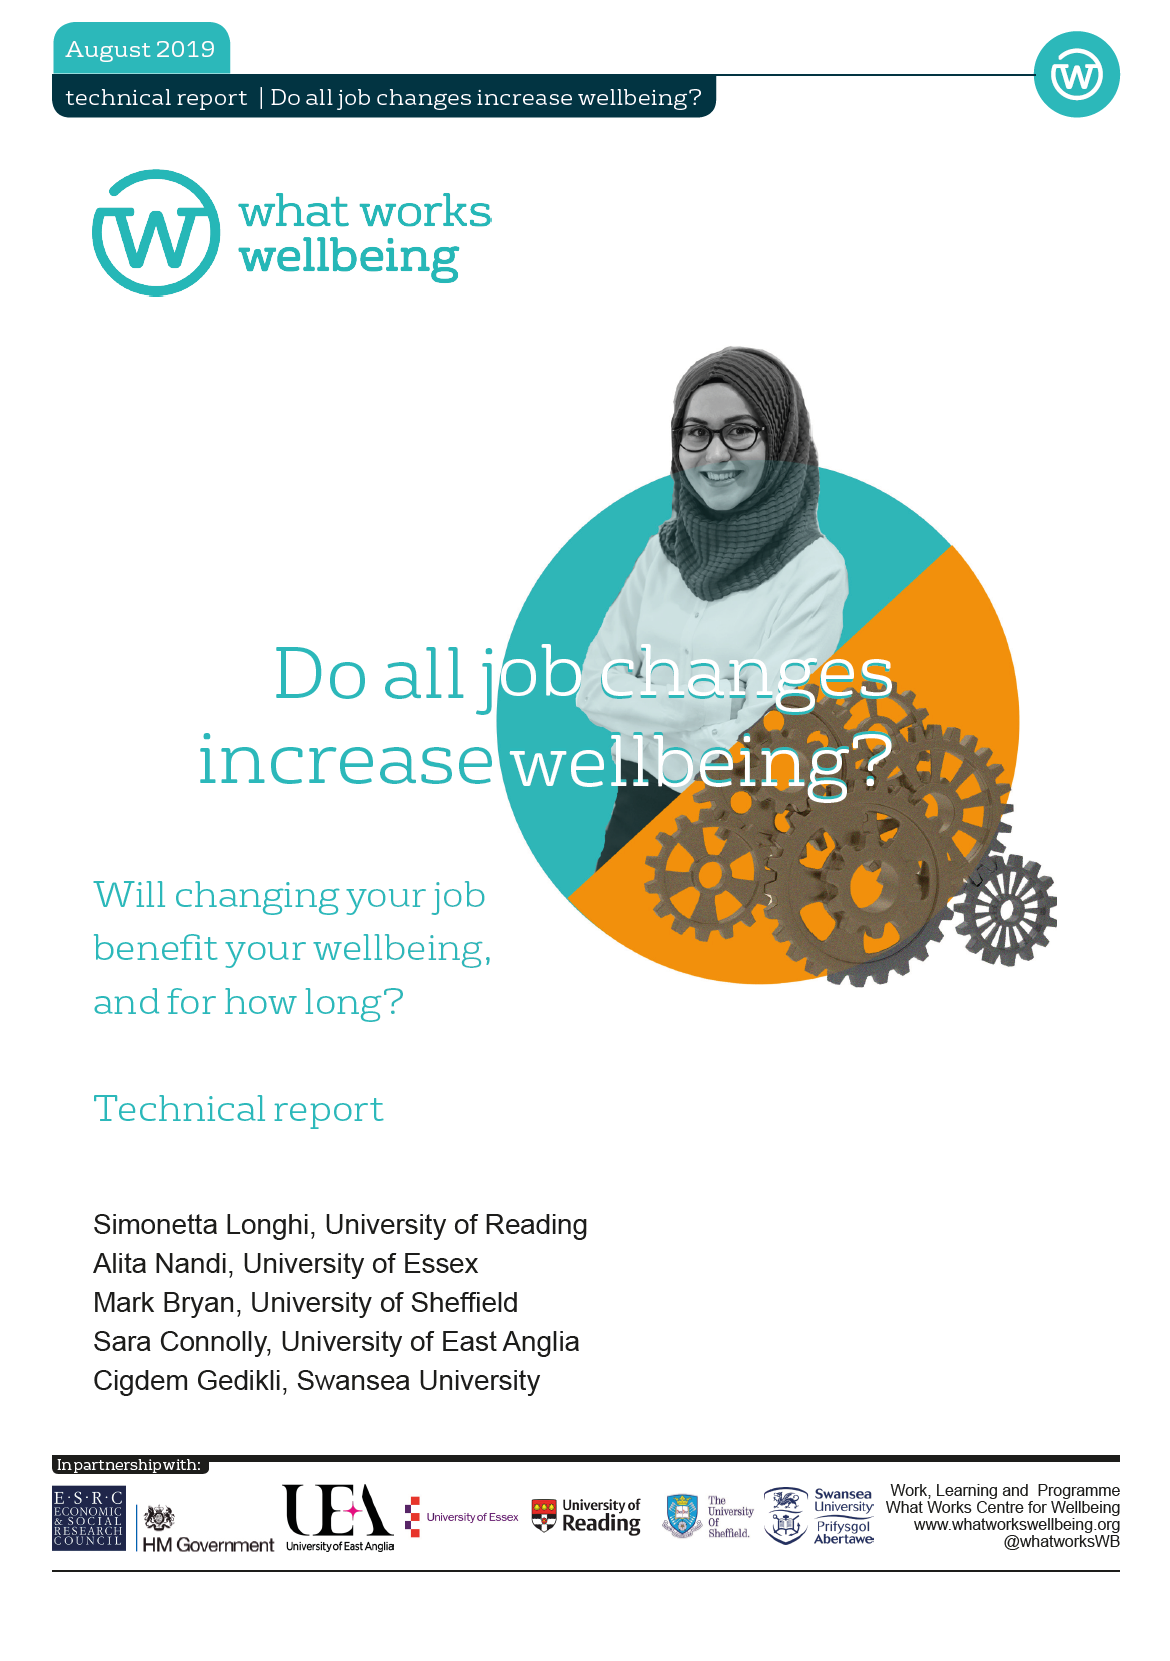 Do All Job Changes Increase Wellbeing? Technical Report